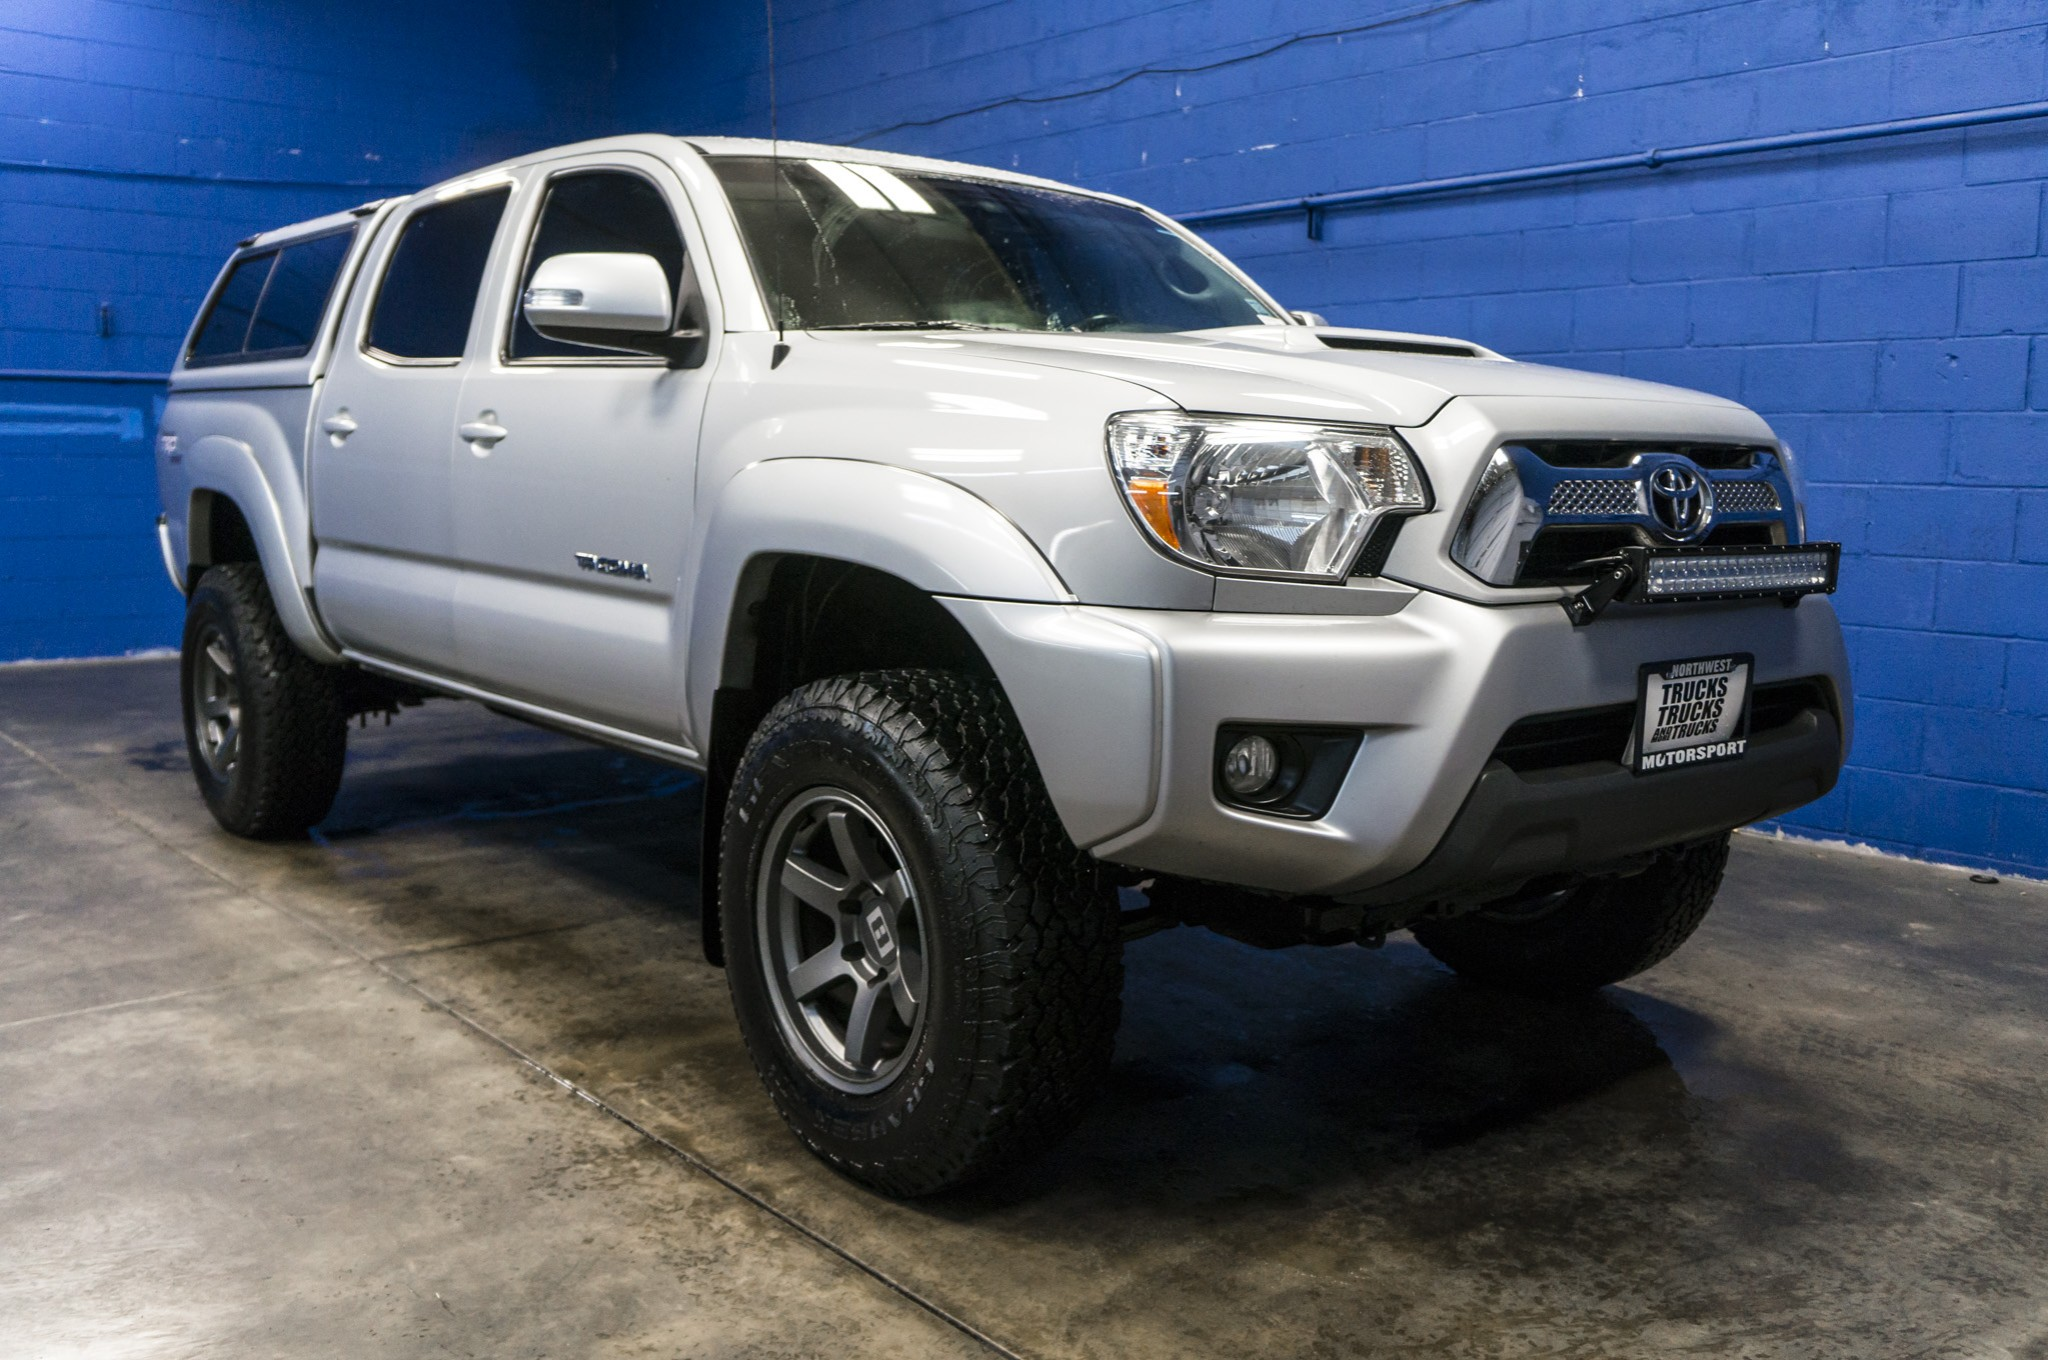 used lifted 2013 toyota tacoma trd sport 4x4 truck for sale 36118. Black Bedroom Furniture Sets. Home Design Ideas